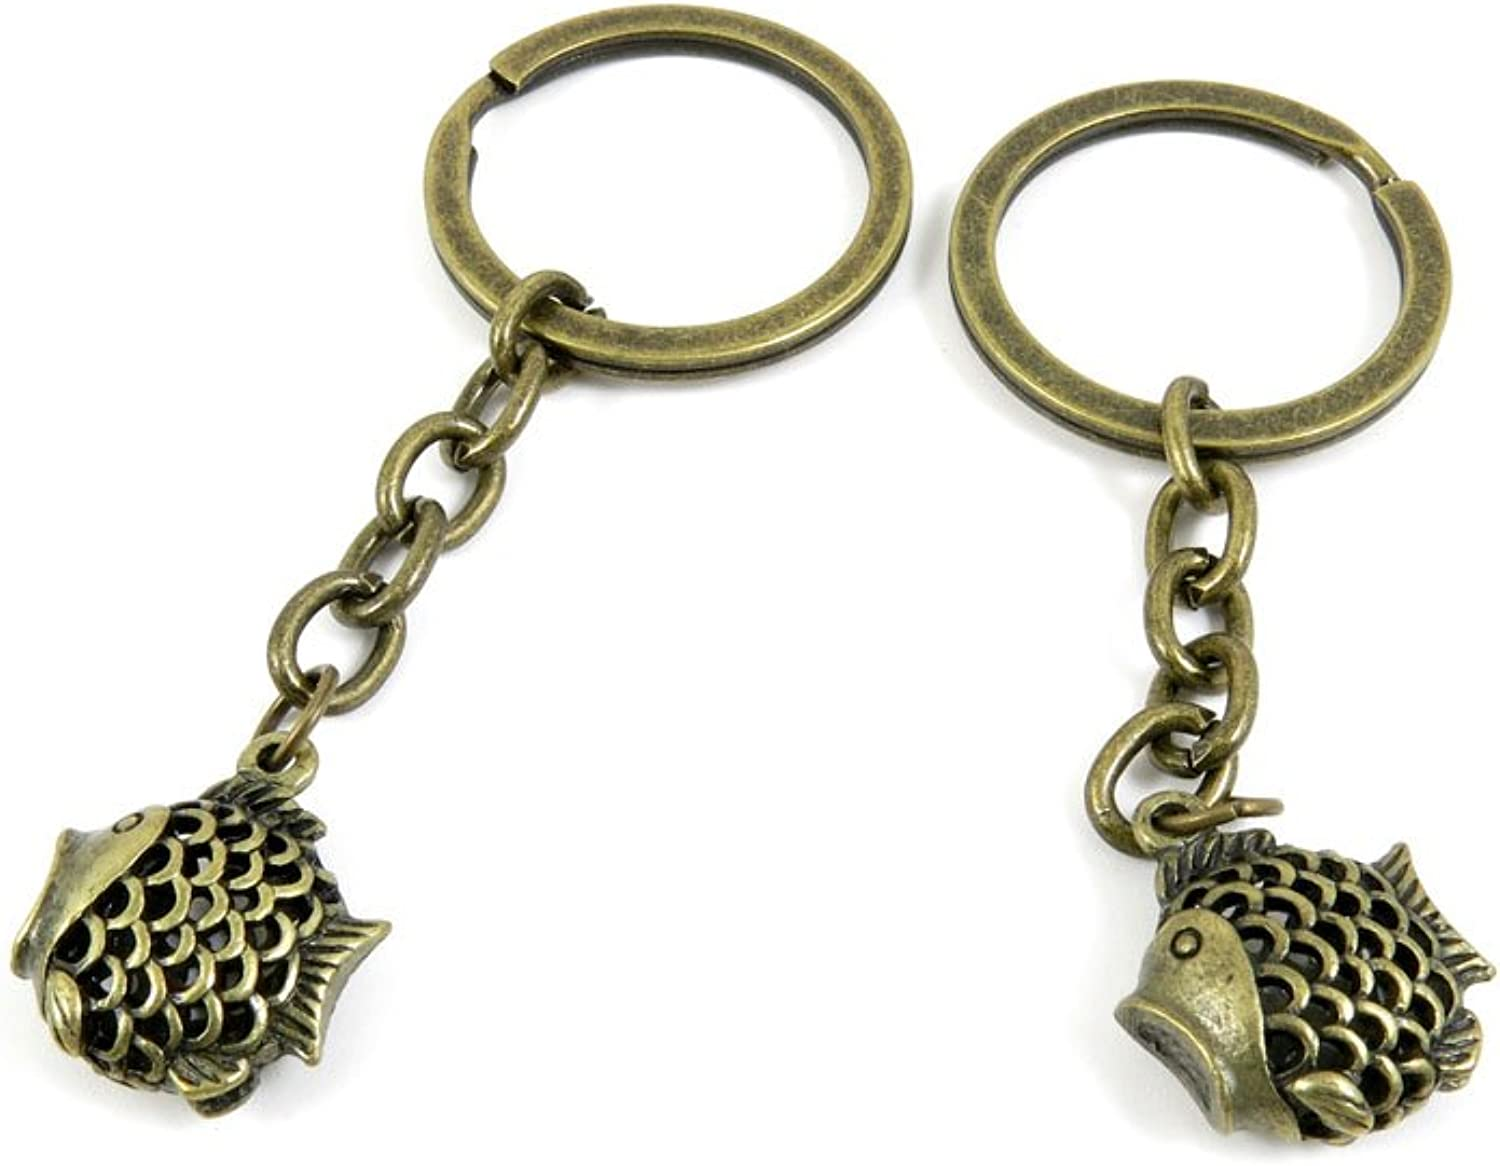 100 PCS Keyrings Keychains Key Ring Chains Tags Jewelry Findings Clasps Buckles Supplies G1NV2 Hollow Fish